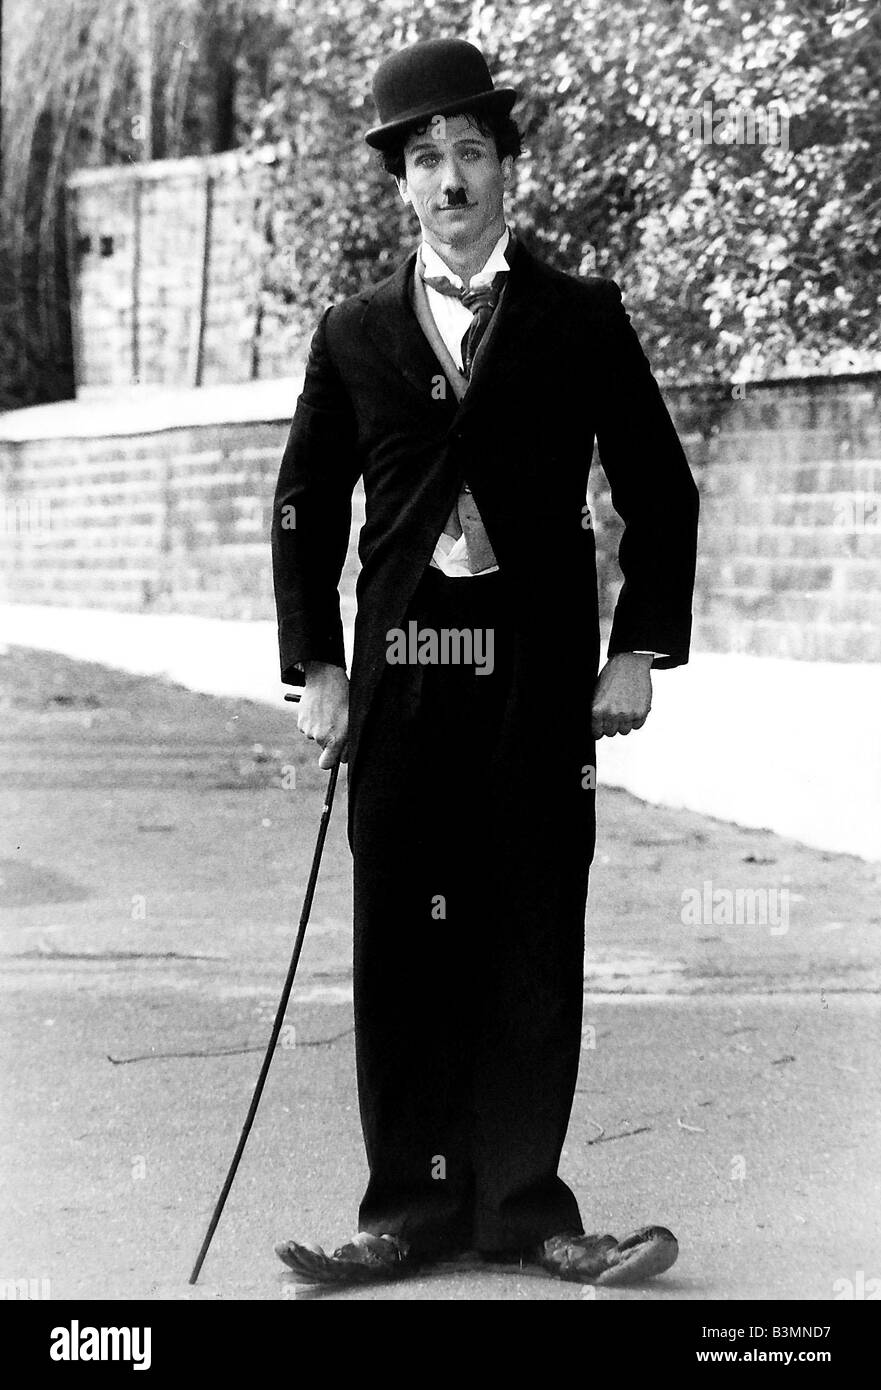 Peter Duncan TV presenter who was on Blue Peter on Childrens TV in the eighties pictured dressed as Charlie Chaplin - Stock Image